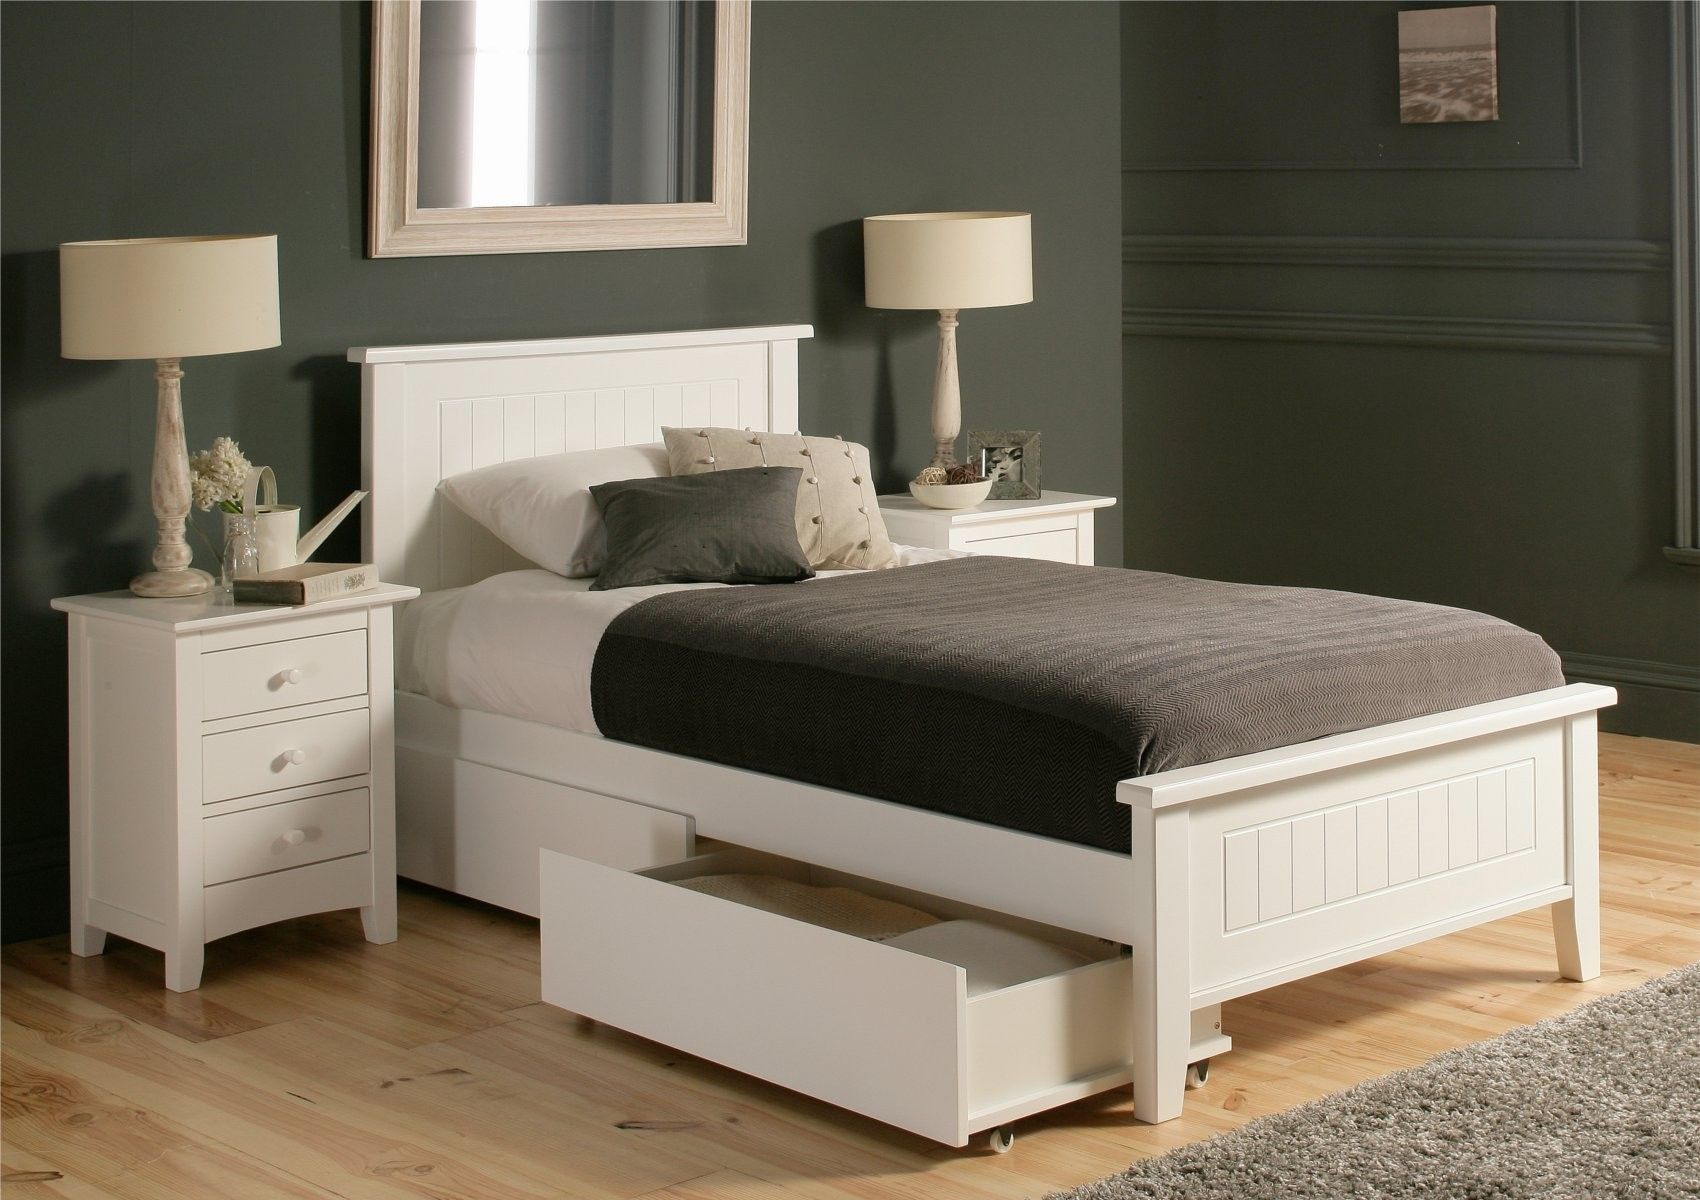 New England Solo Wooden Bed Frame in 2020 Single wooden